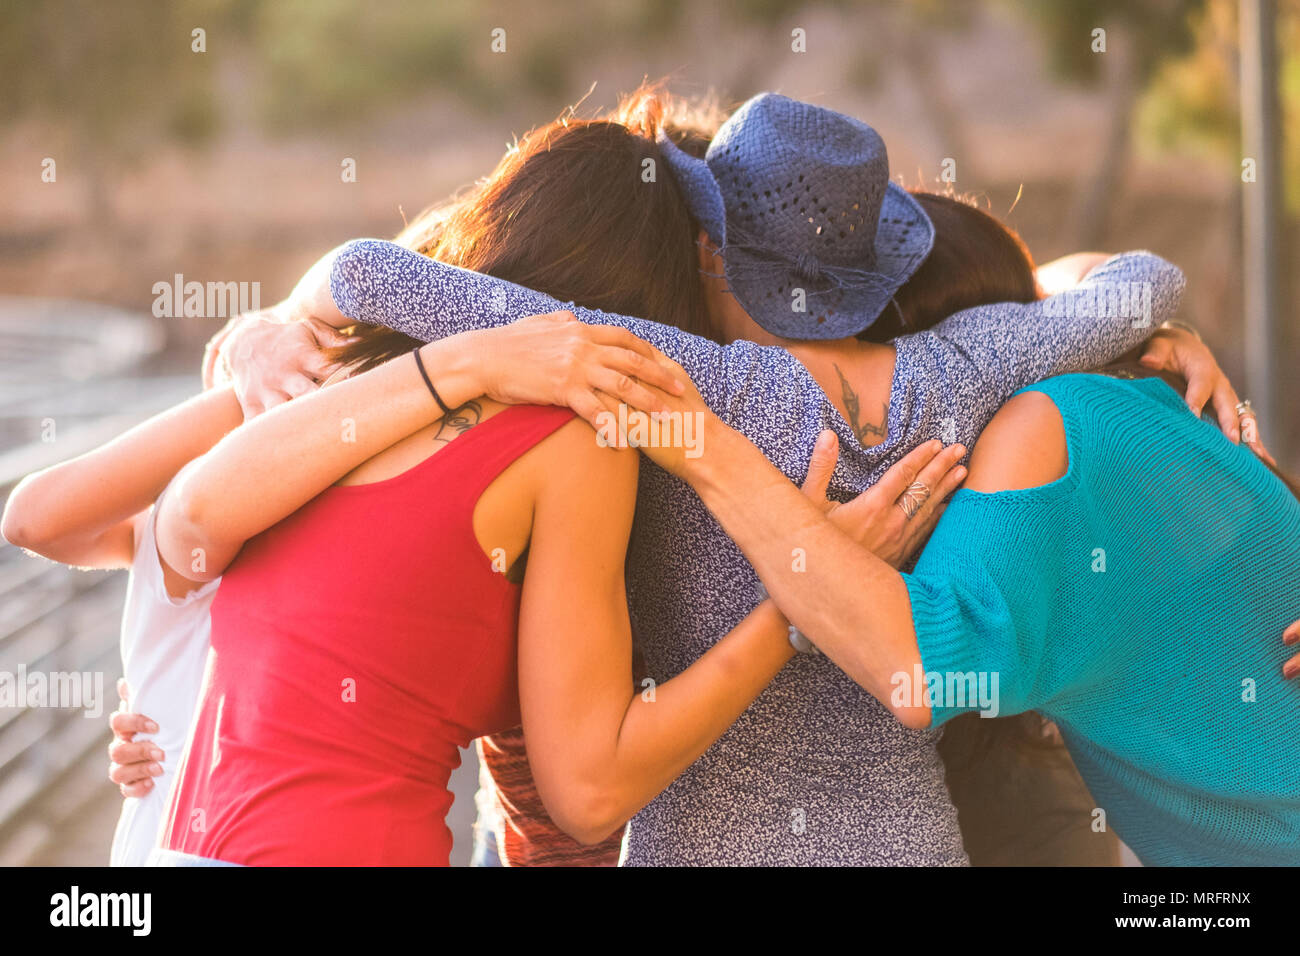 union all togehter like a team work and group of friends females 7 beautiful women hug all together under the sunlight and sunset for friendship and r - Stock Image